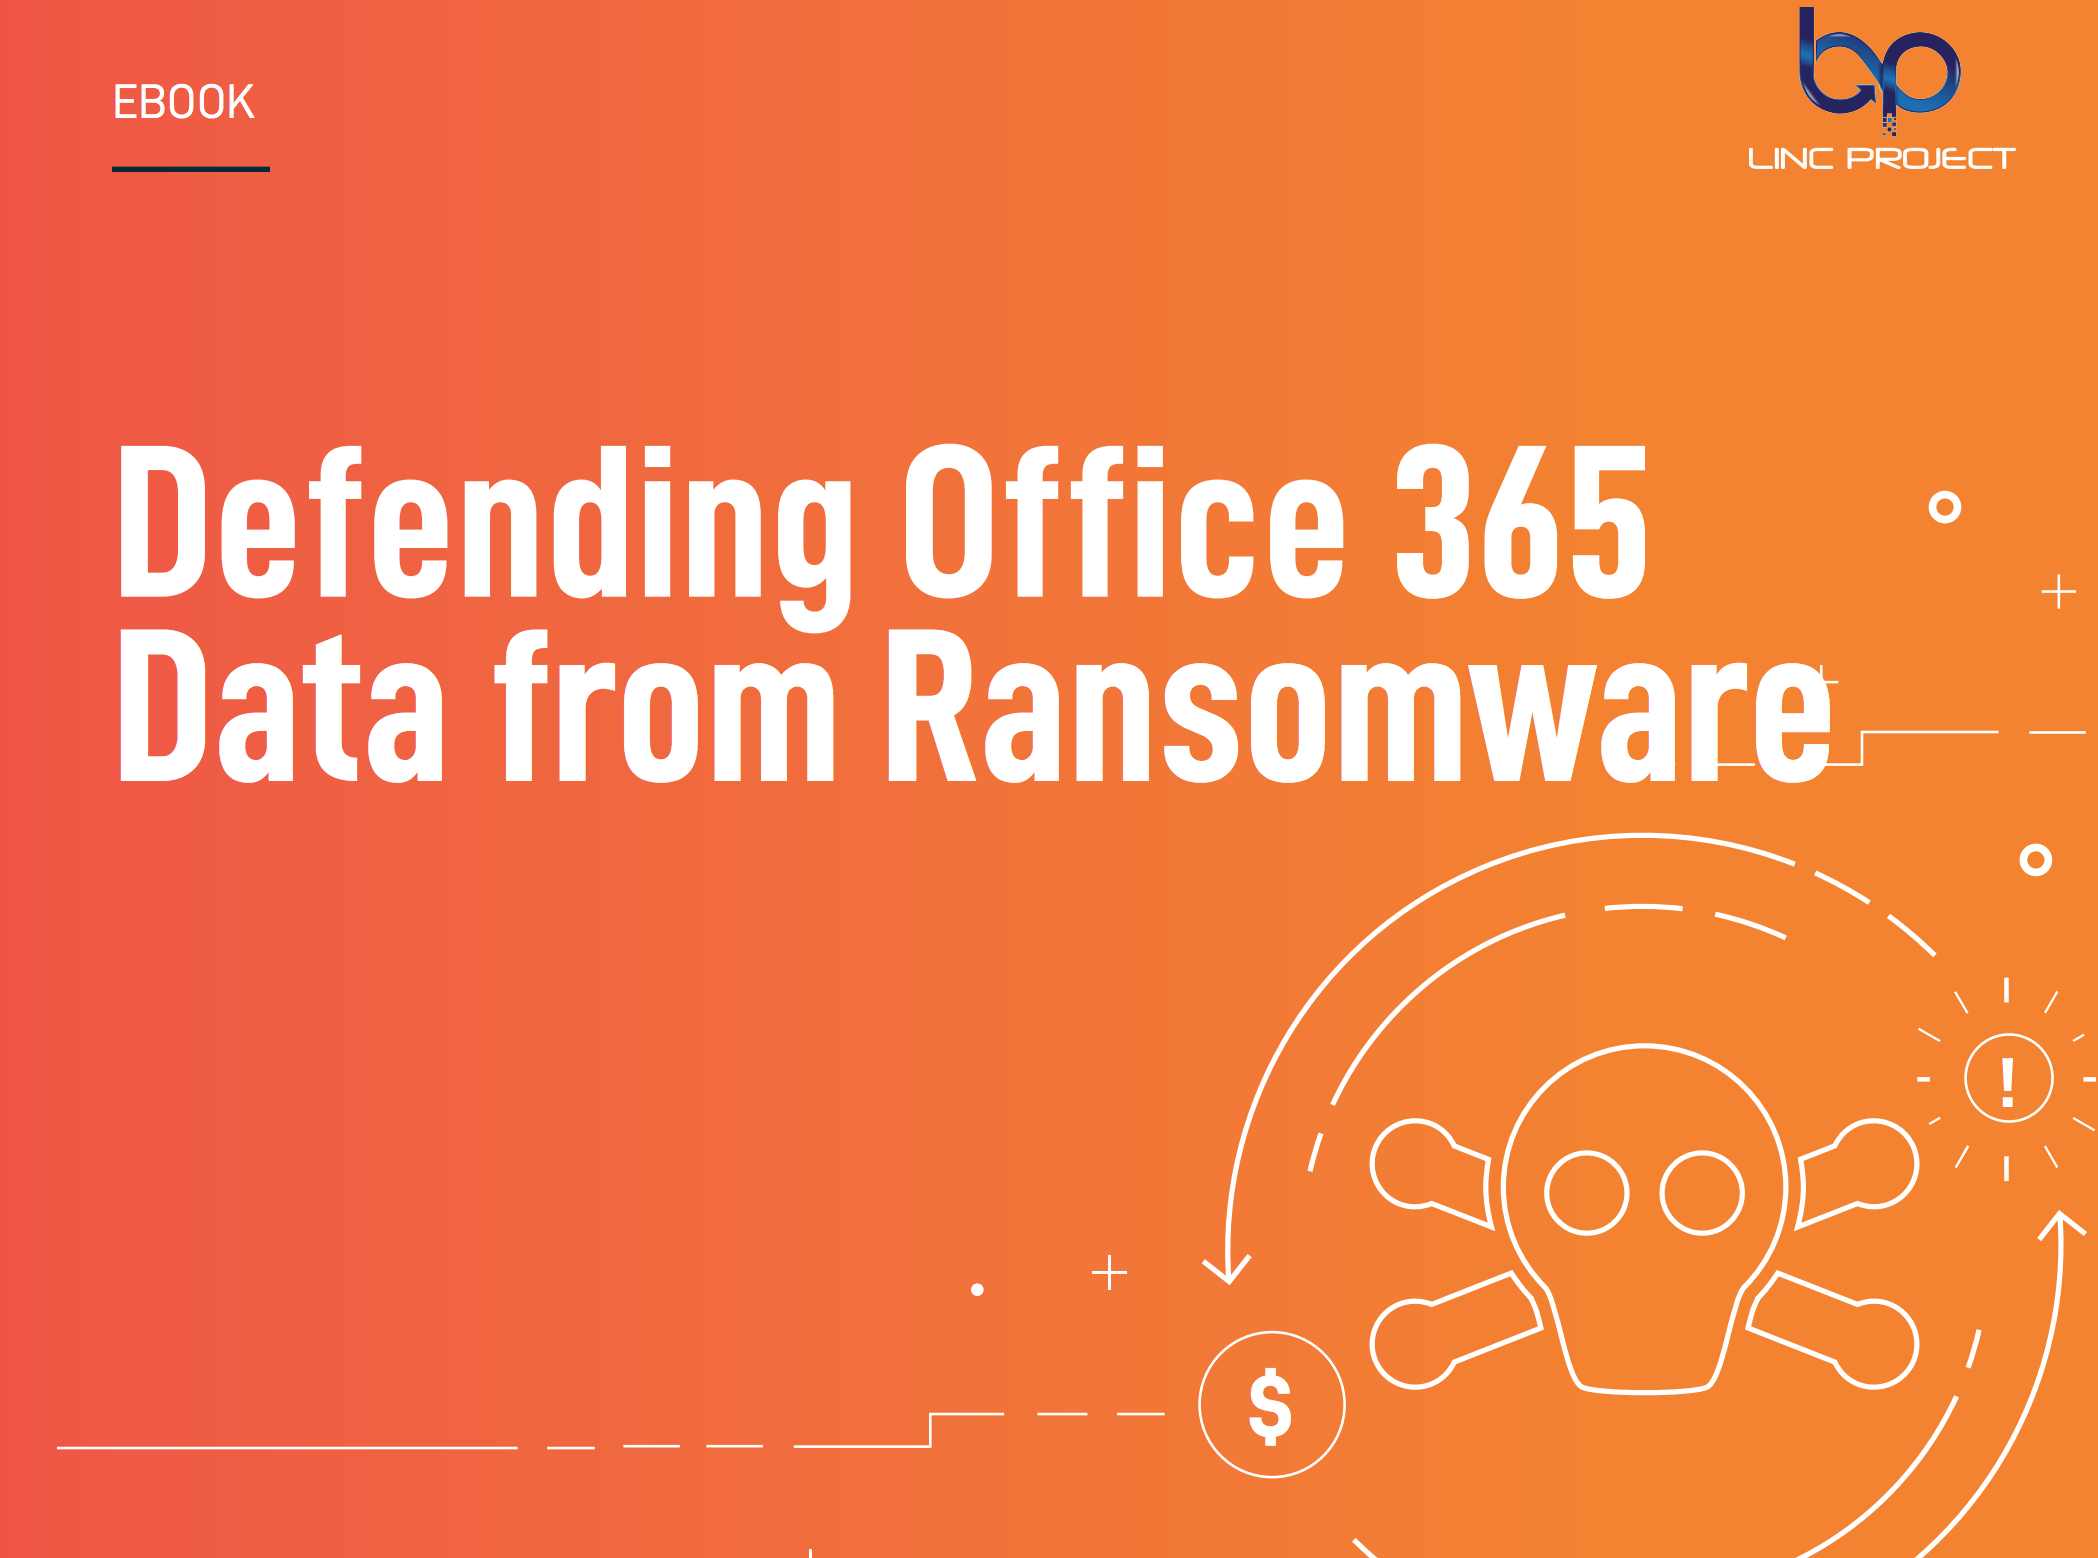 Defending Office 365 Data from Ransomware